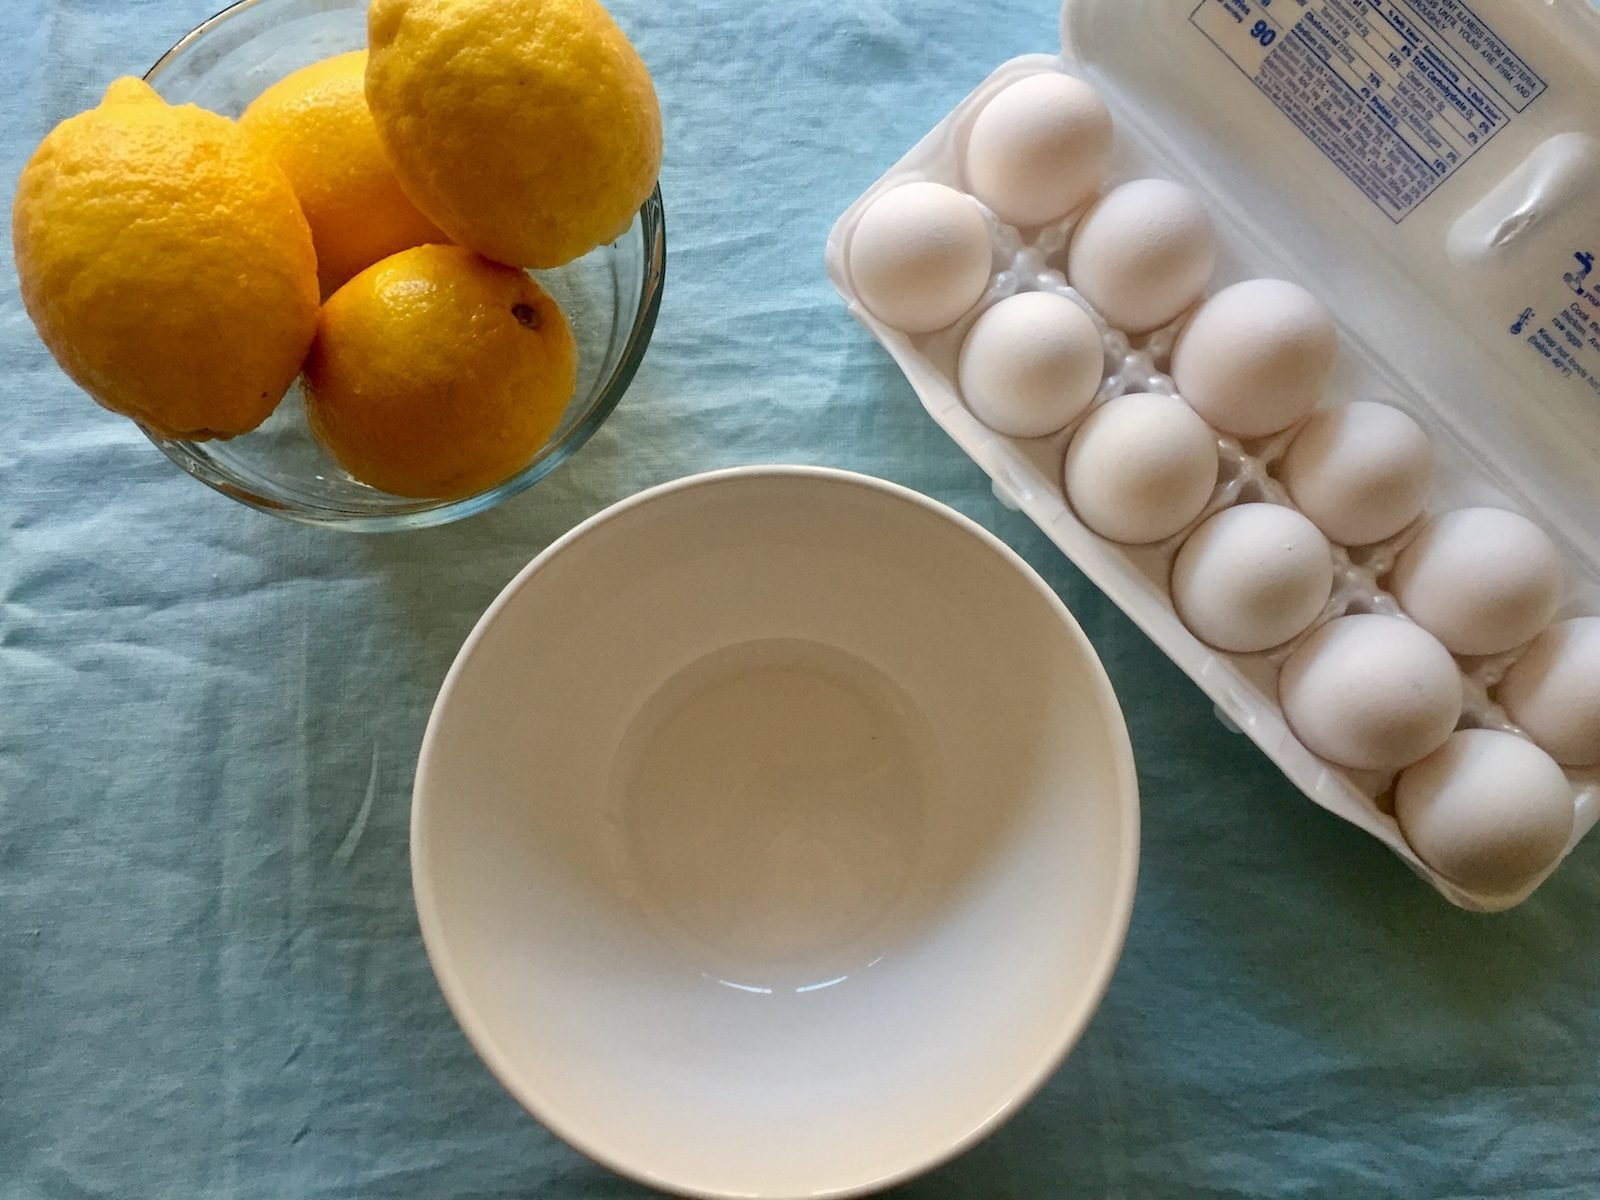 Making Reese Witherspoon's lemon pie with lemons, eggs and a bowl